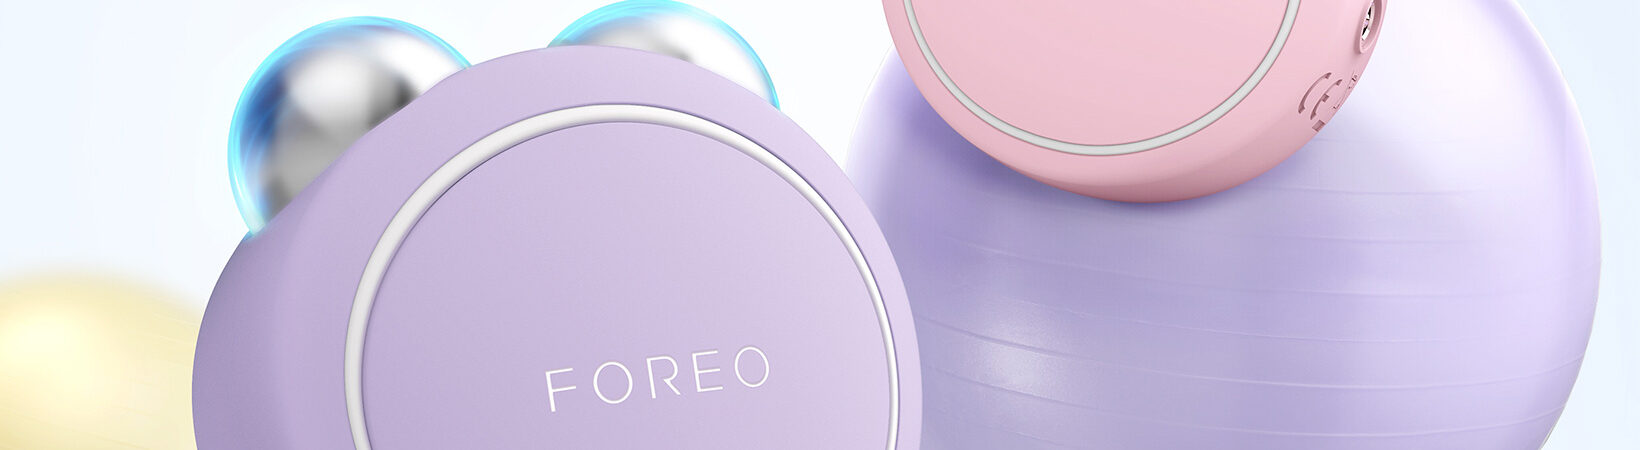 5 5 1640x450 - Foreo Launches New Facial Toning Massagers 2020